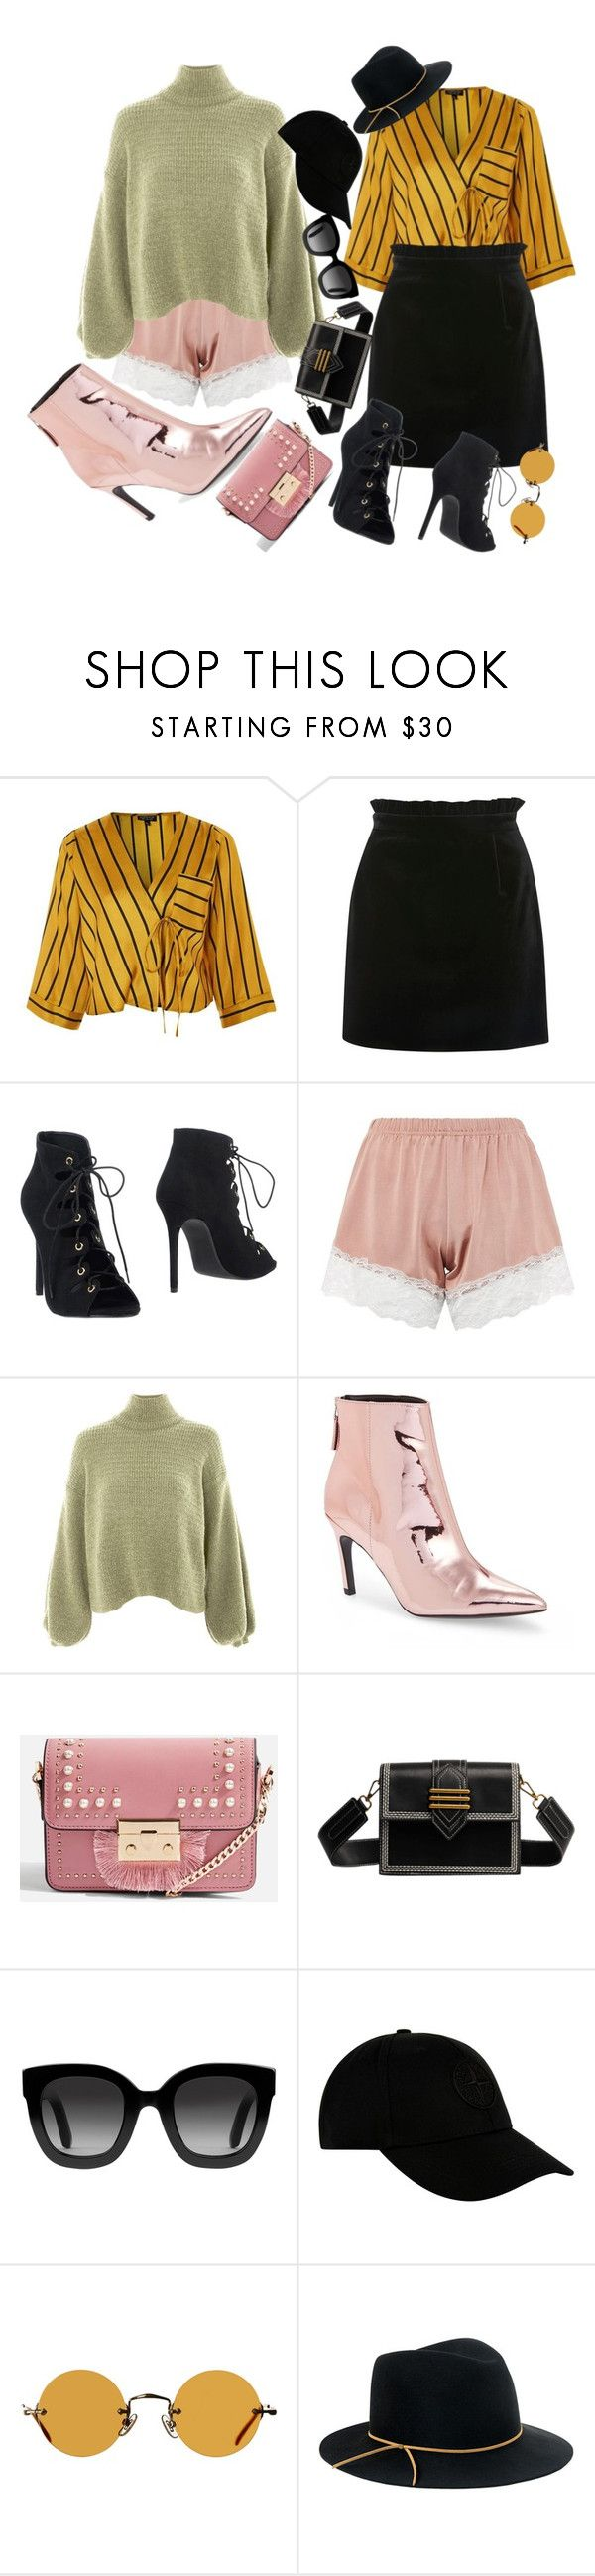 """day out and a pj shorts night out"" by morningstaryasmine ❤ liked on Polyvore featuring Topshop, Gucci, STONE ISLAND, Hakusan and Eugenia Kim"